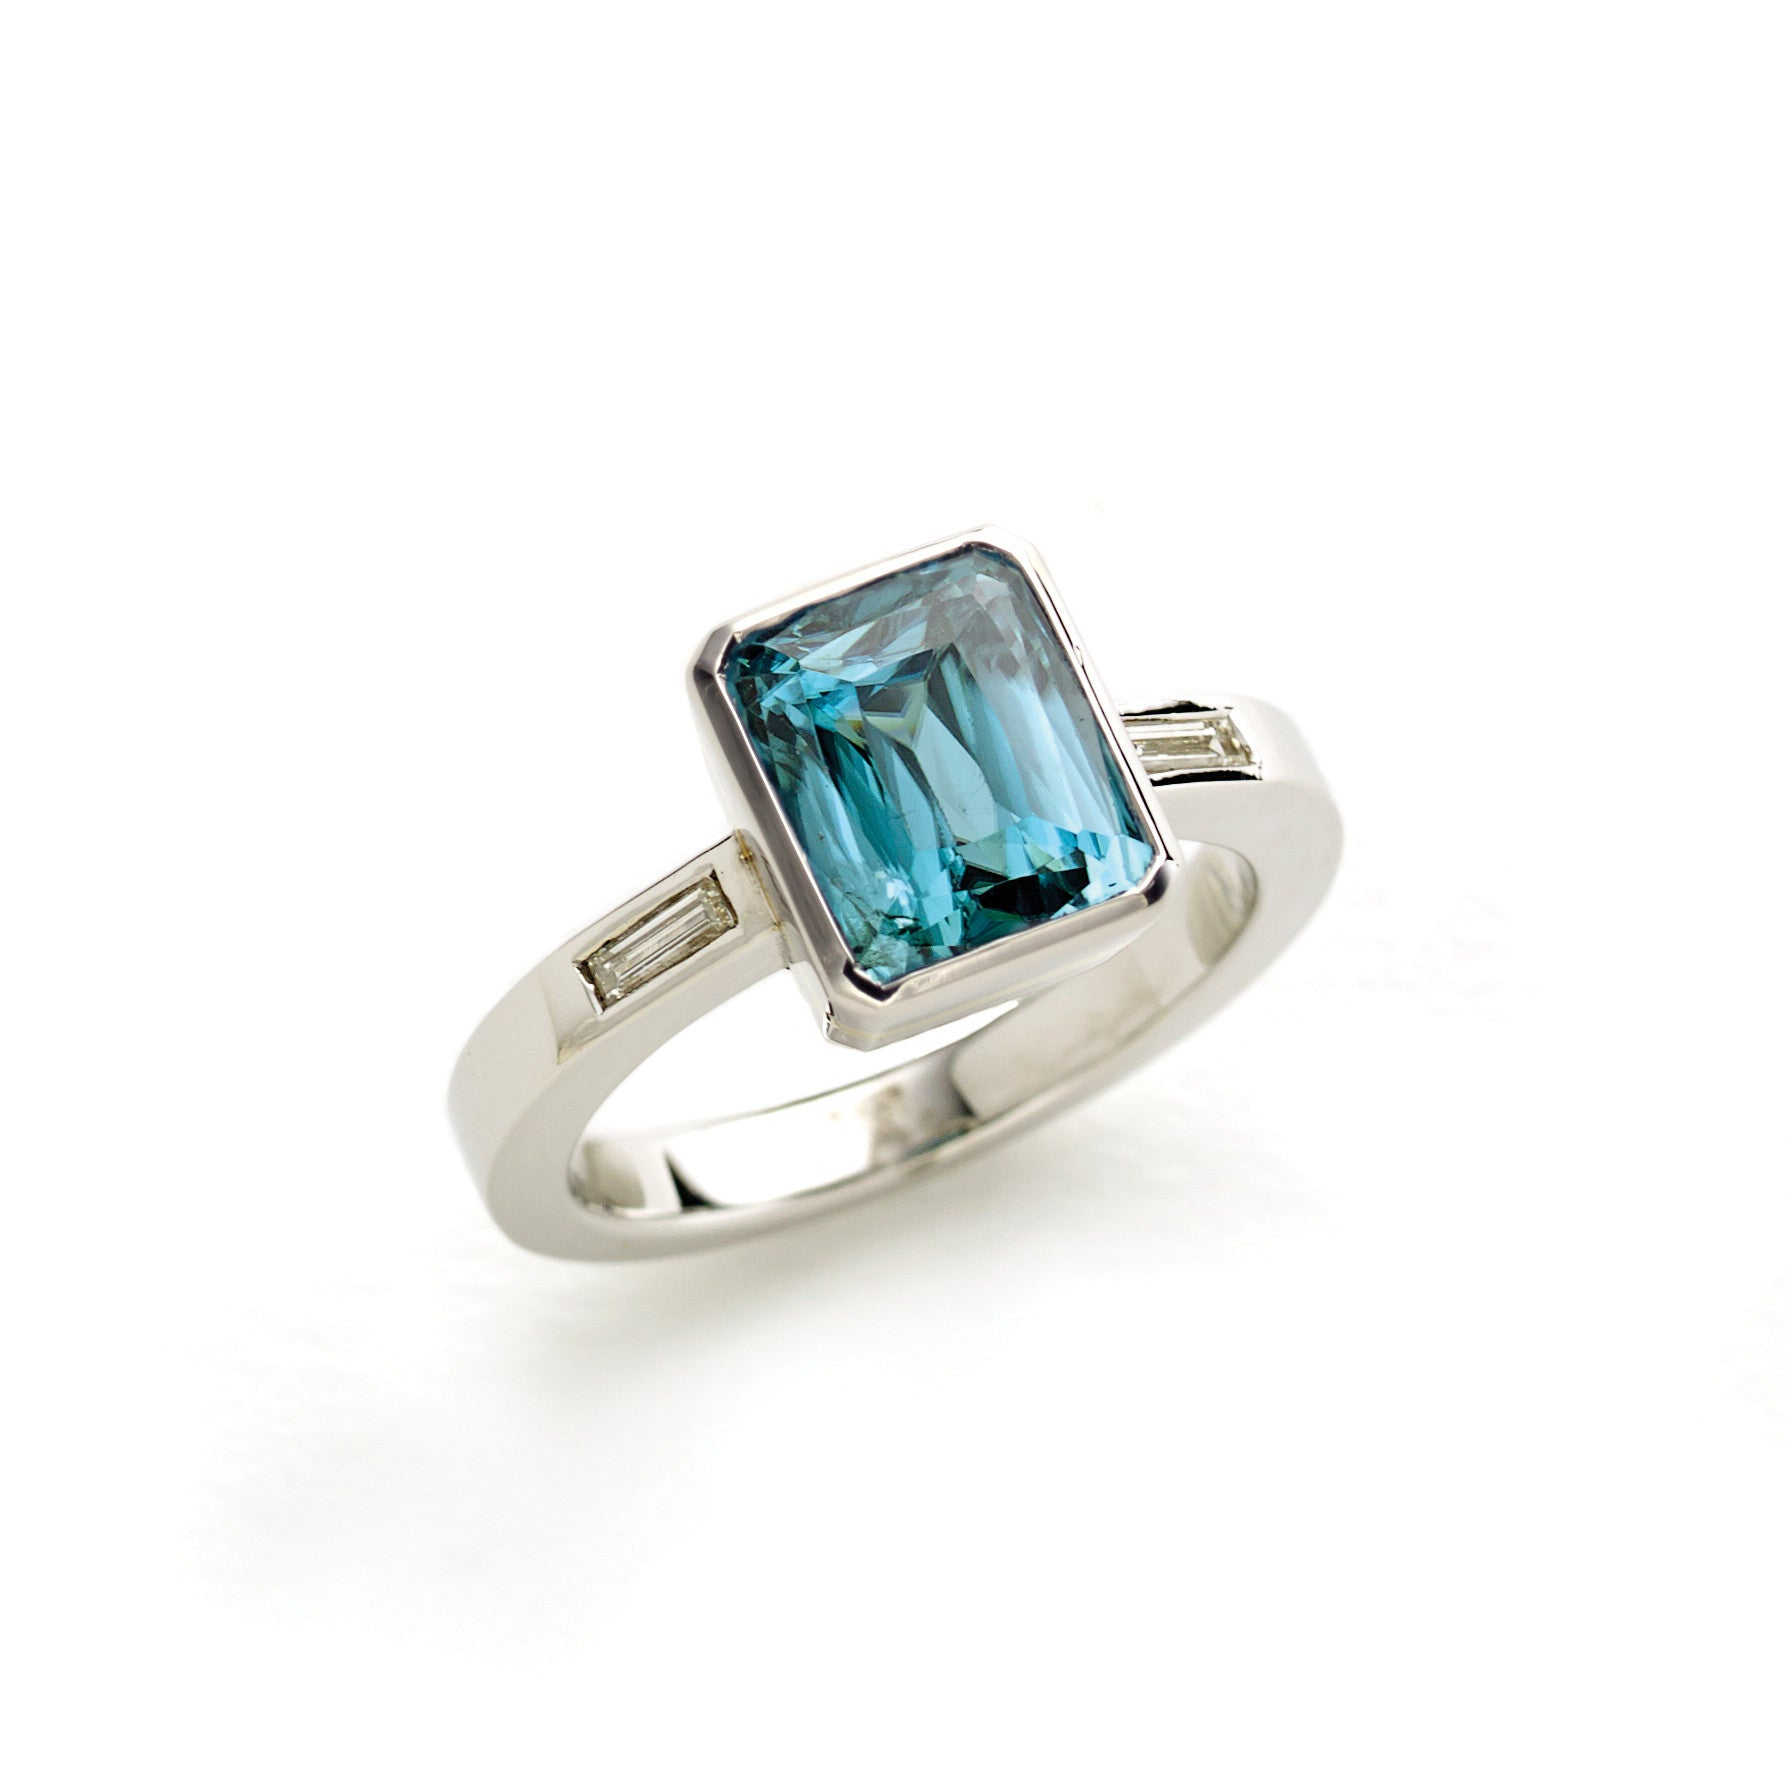 White gold ring set with blue zircon, with baguette diamonds set in shoulders of shank